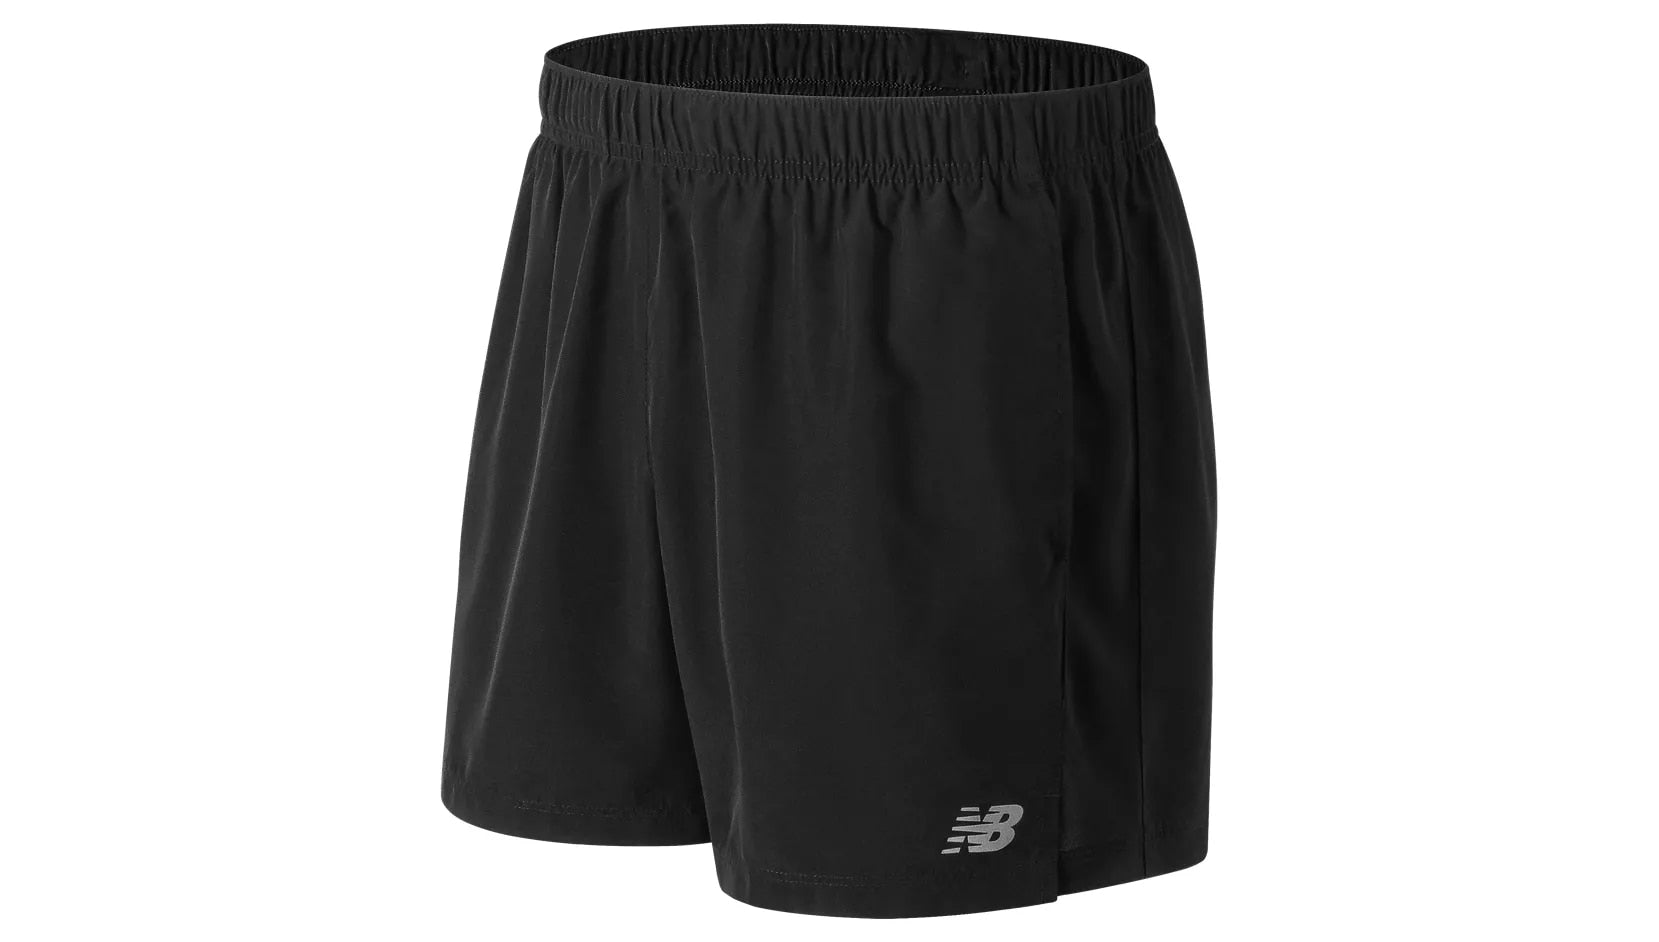 41a13f222867f New Balance Running Shoes & Clothing | The Runners Shop